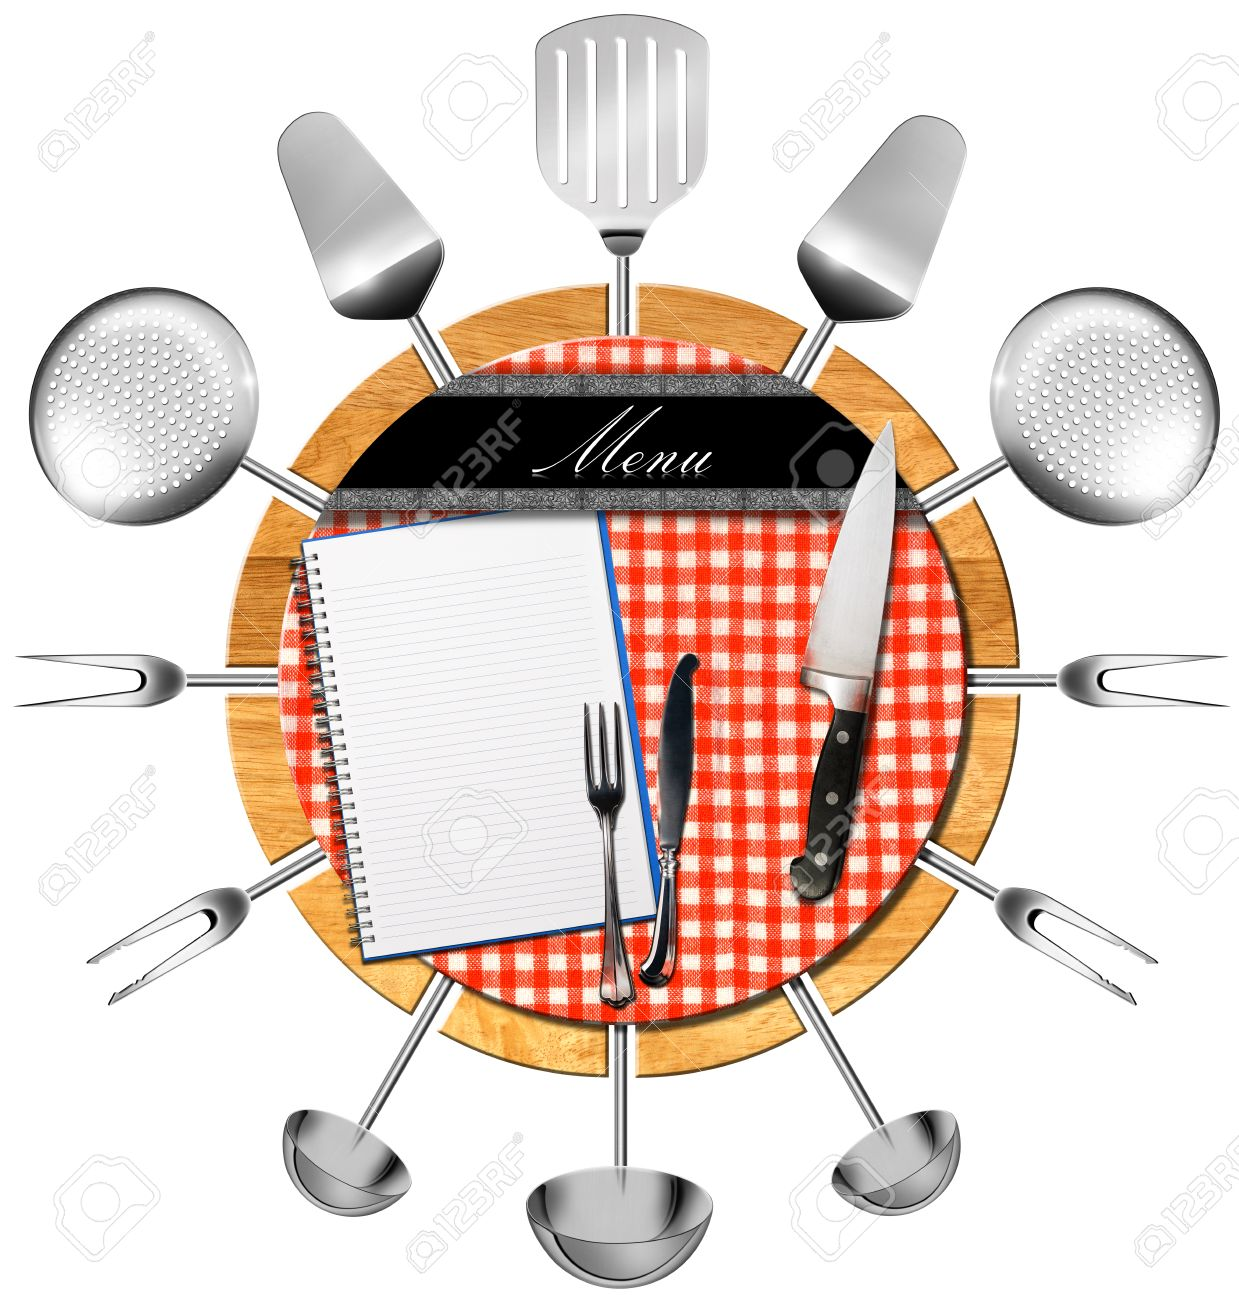 Restaurant Kitchen Utensils restaurant menu on round cutting board with kitchen utensils